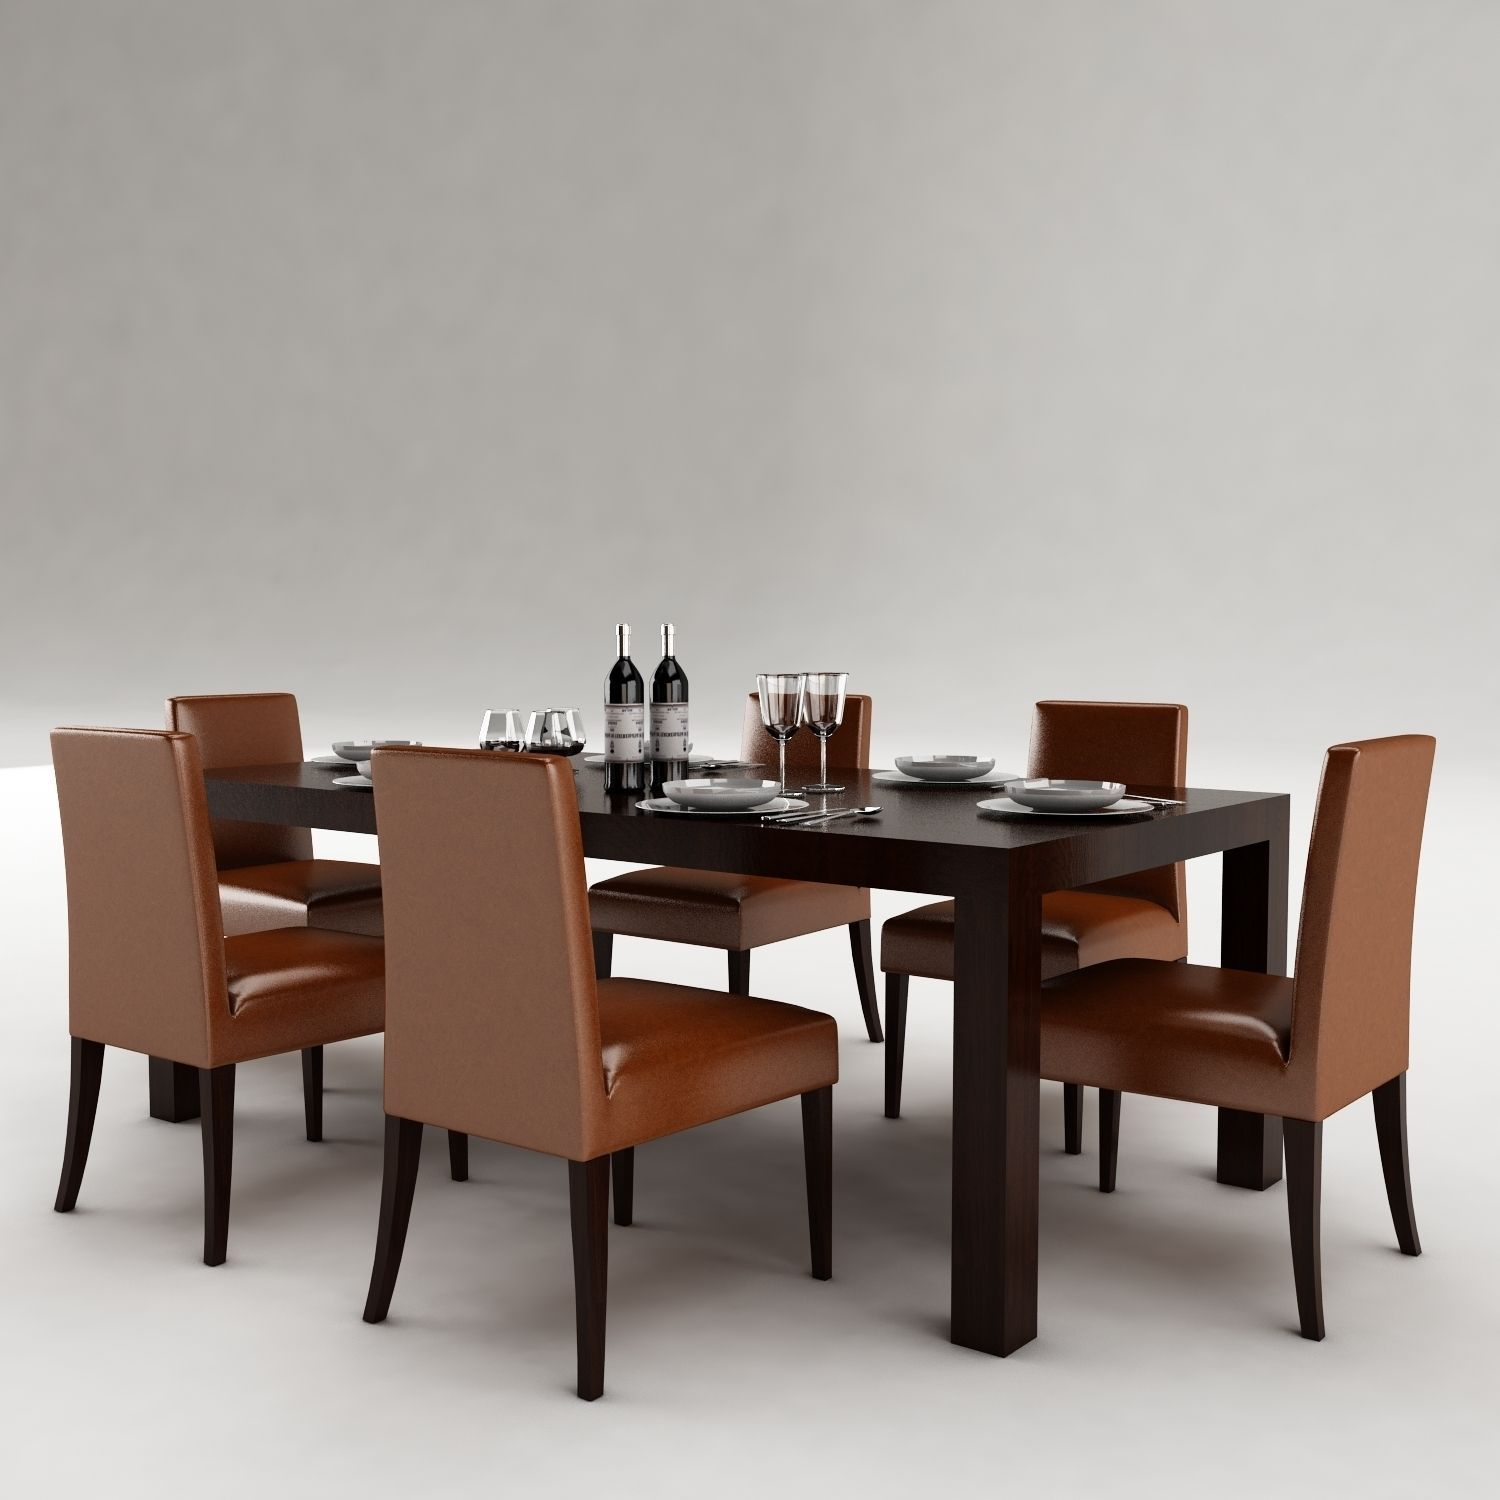 Dining table 53 3d model max obj 3ds fbx for Dining table models